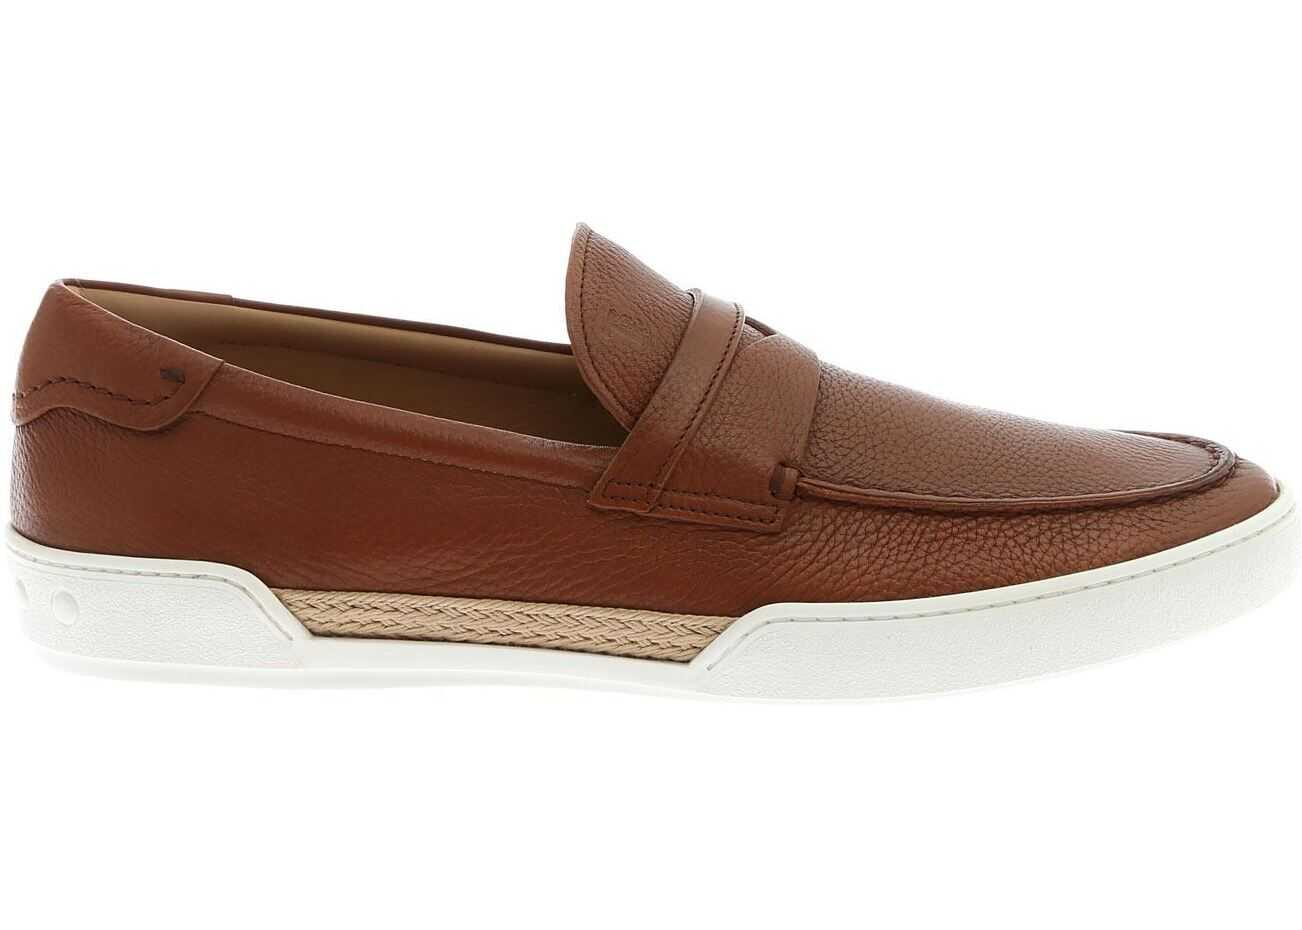 TOD'S Loafers In Brown With Rope Detail XXM48B0BC30VYPS013 Brown imagine b-mall.ro